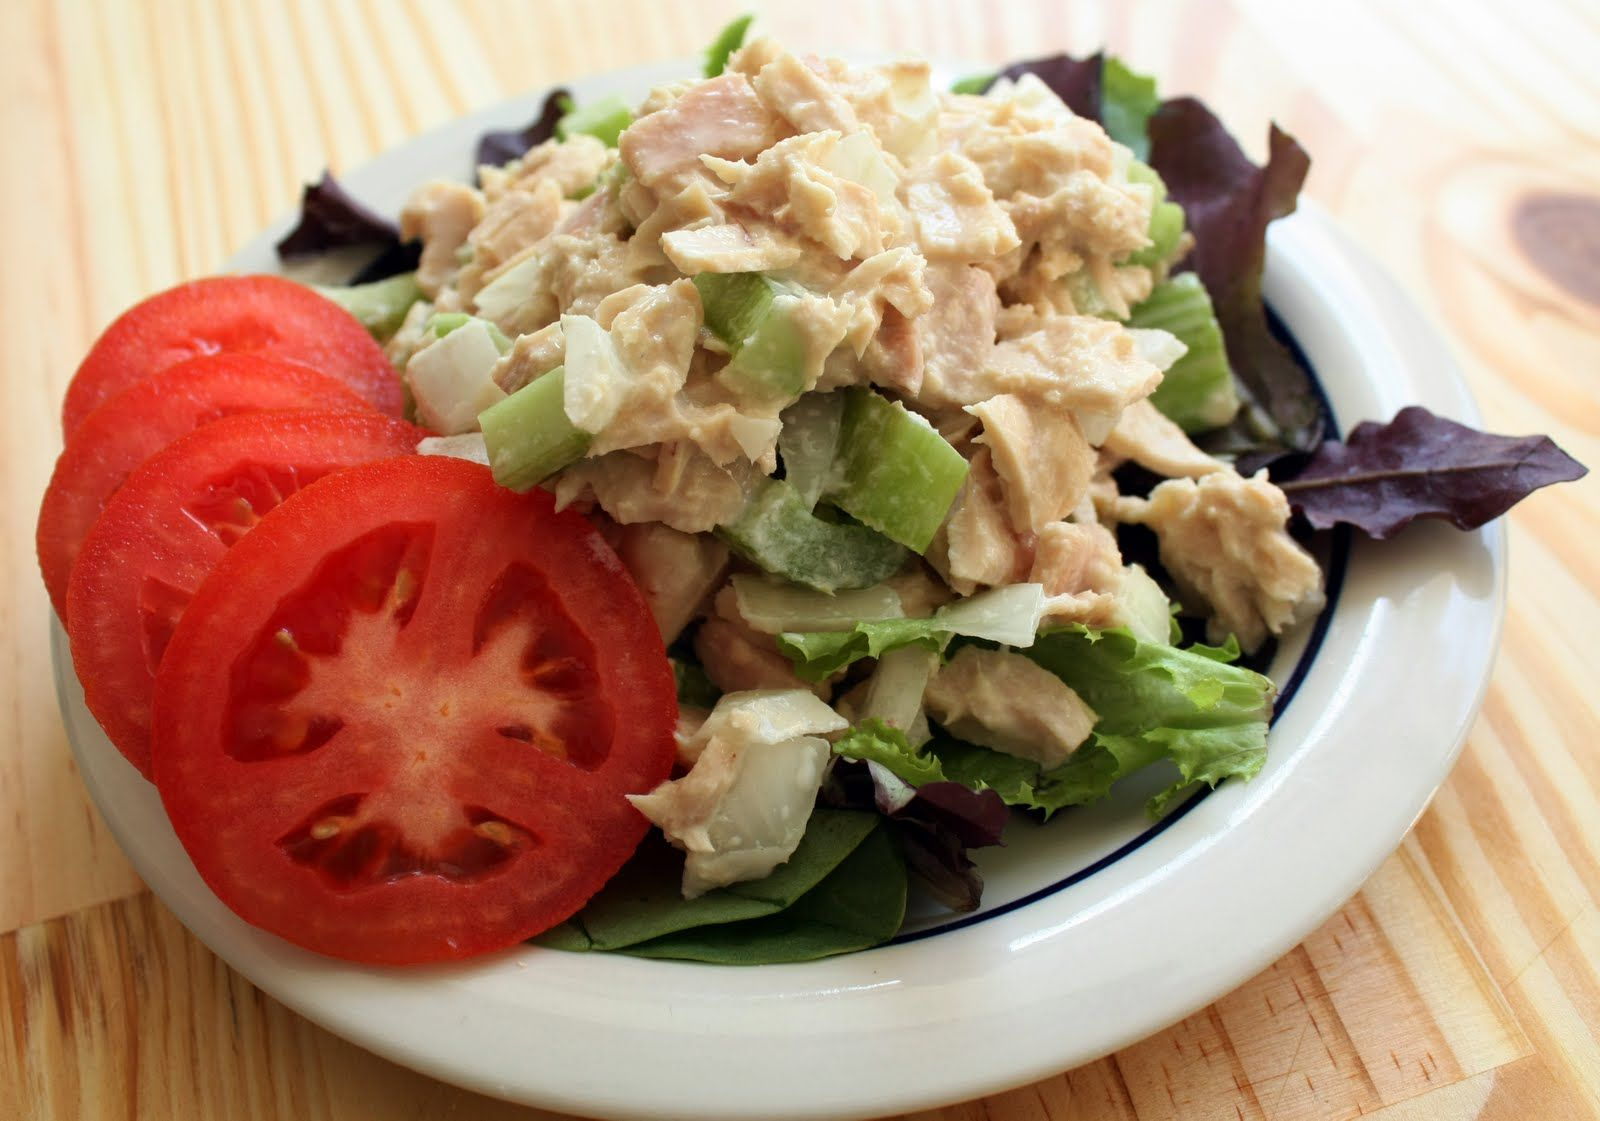 The Food Lovers' Primal Palate: Tuna Salad